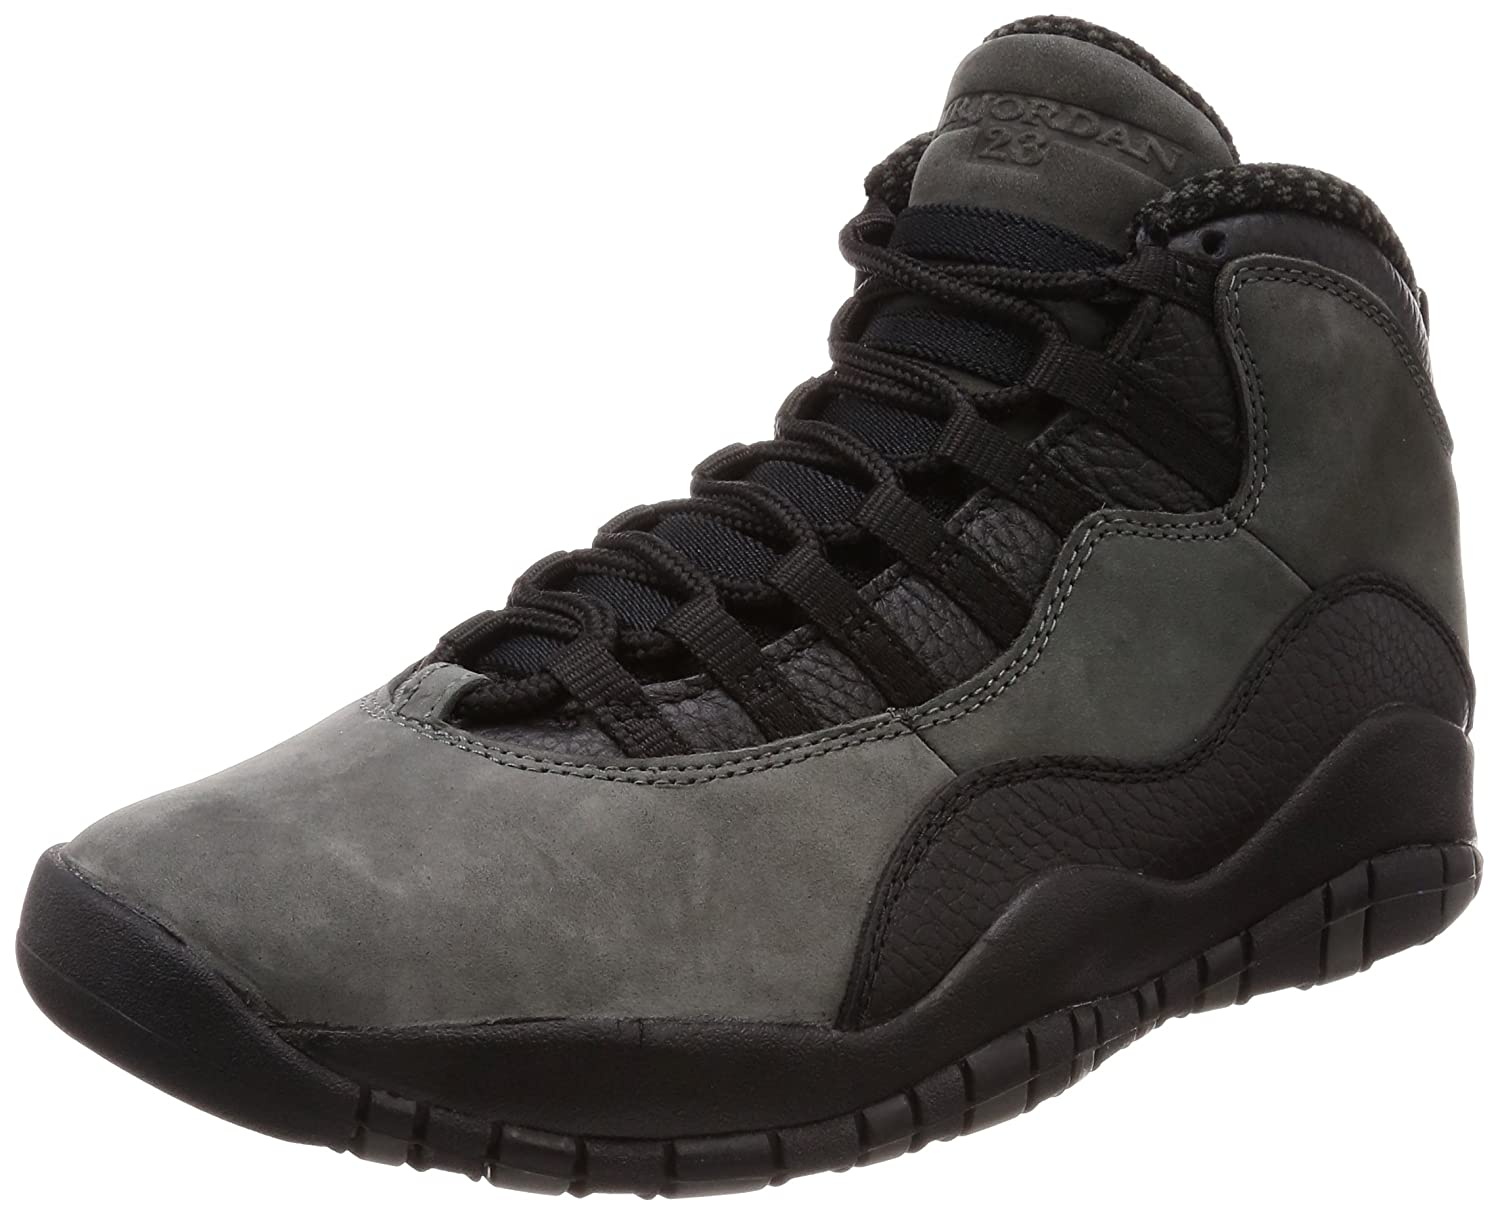 Nike Herren Air Jordan 10 Retro Dunkelgrau Leder/Synthetik/Textil Sneaker  44.5 EU|Dunkelgrau (Dark Shadow/True Red/Black)